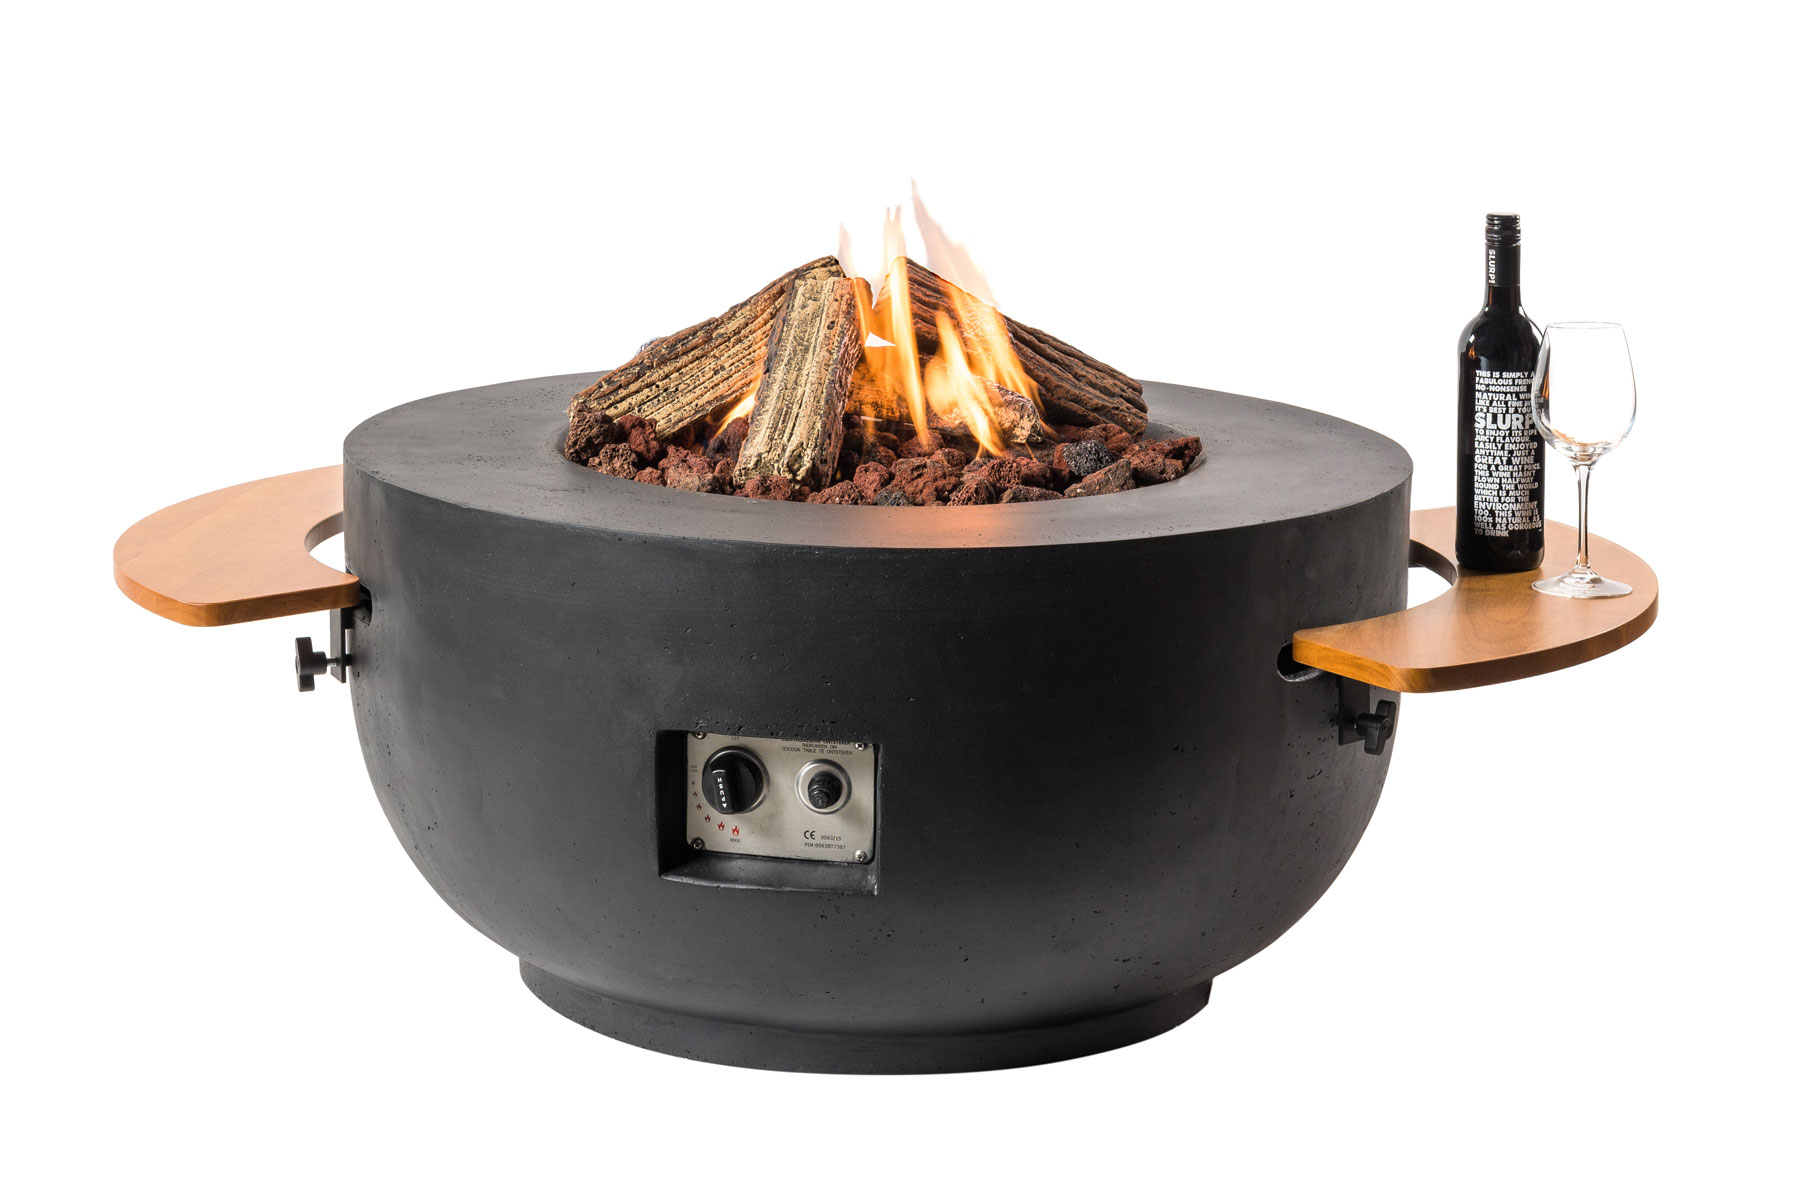 Norfolk-Leisure-Cocoon-Bowl-Fire-Pit